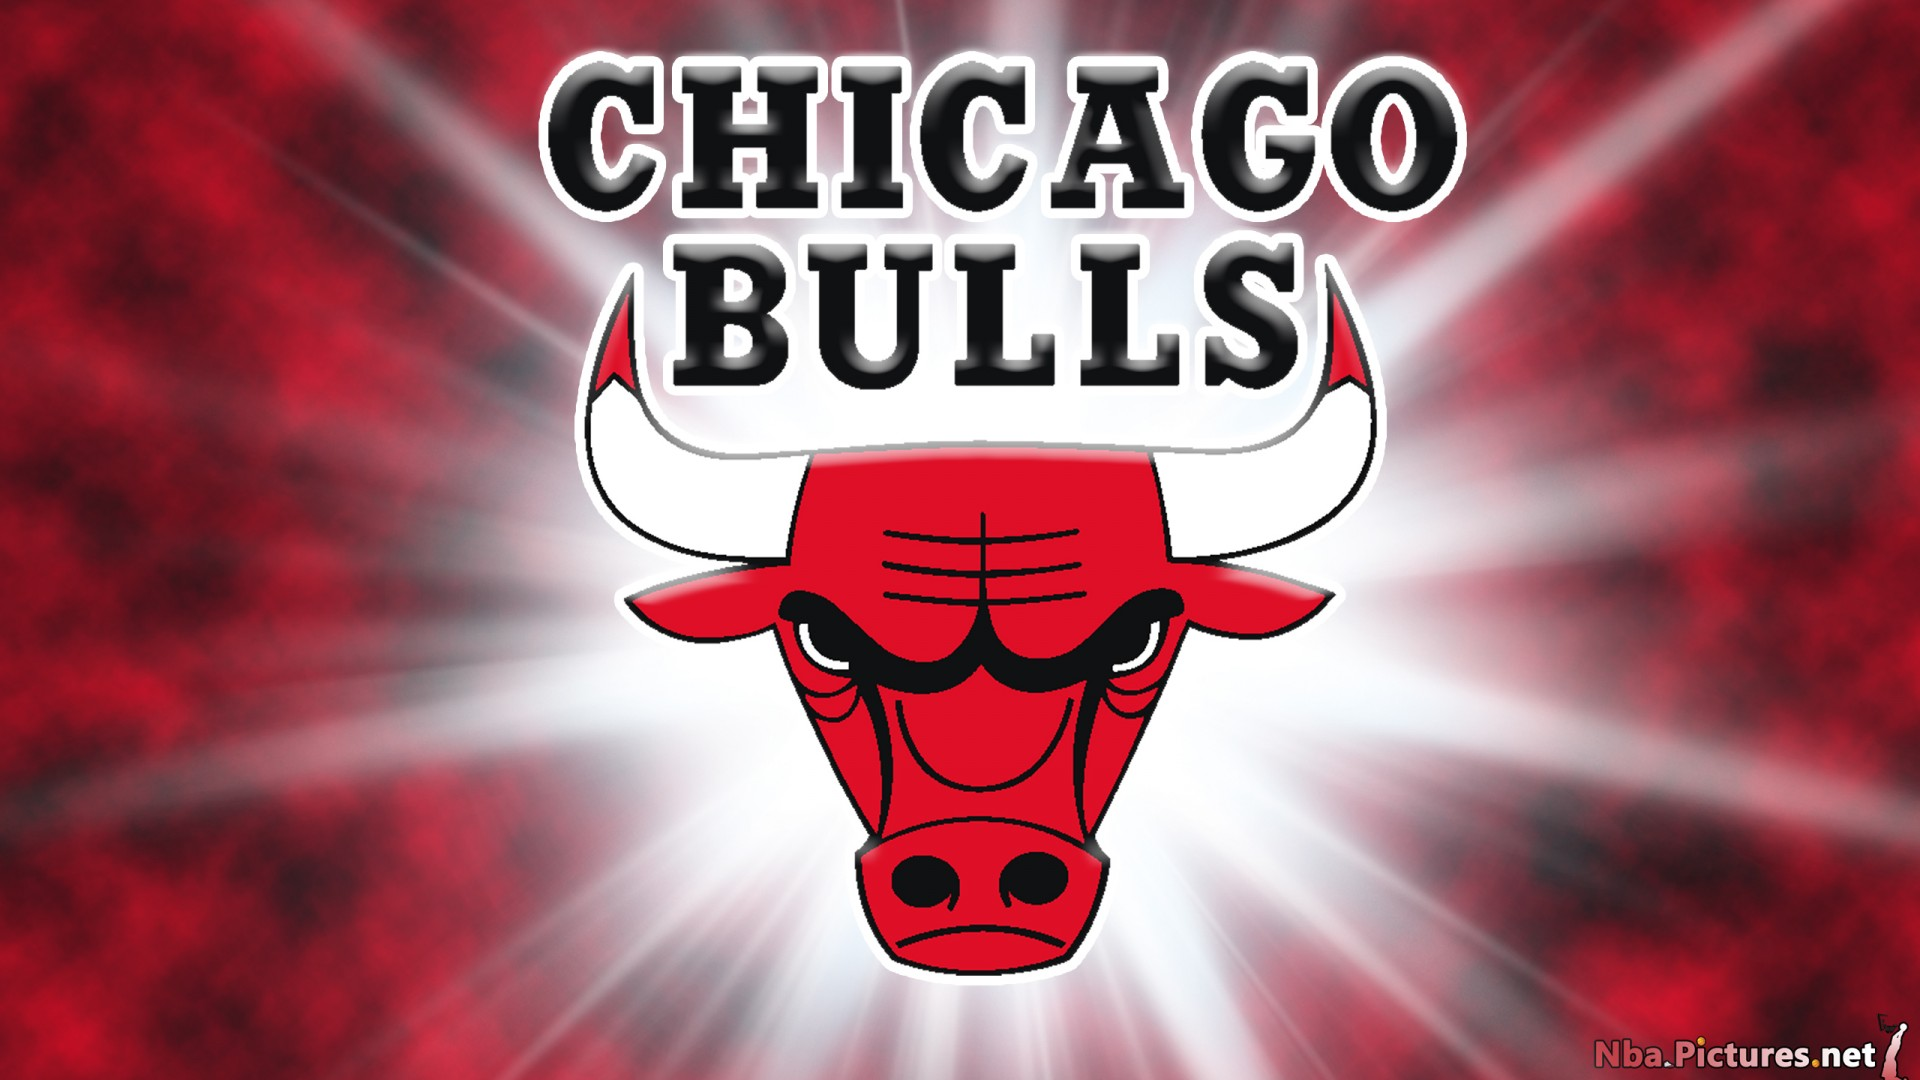 Preparing For the Playoffs With the Chicago Bulls